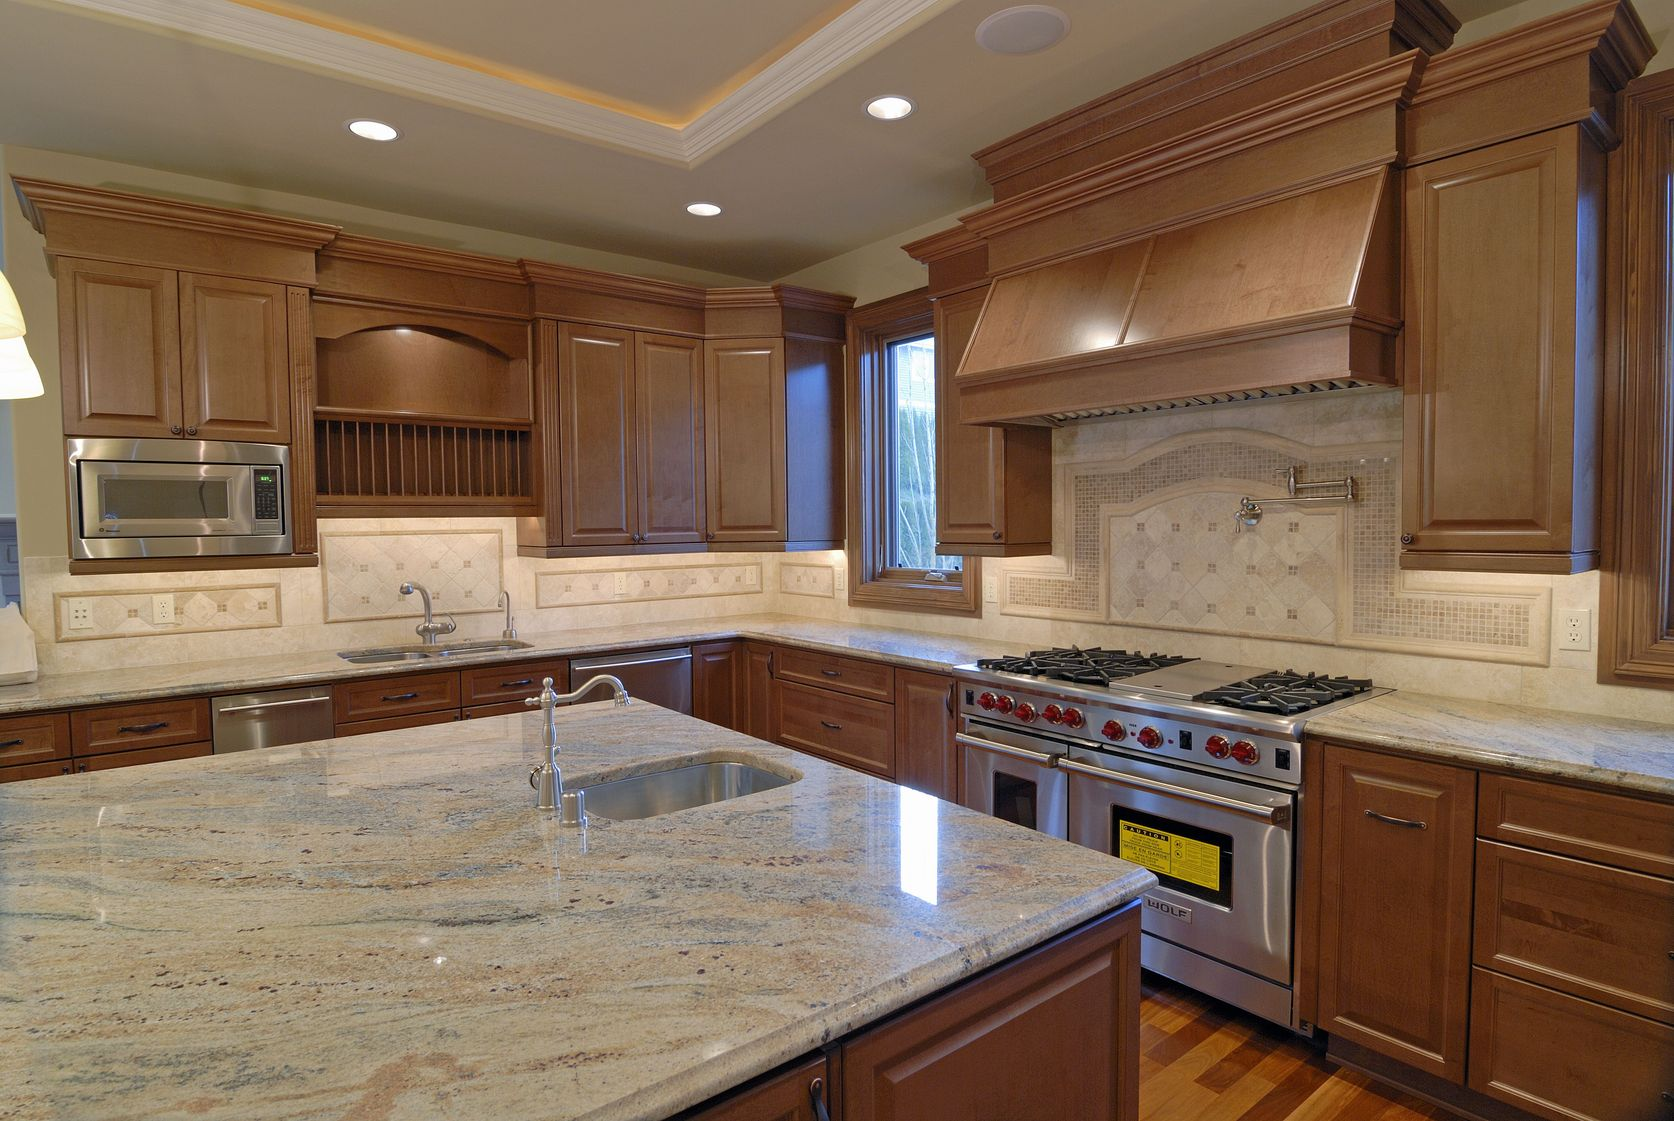 Kitchen Remodeling Tips How To Design A With